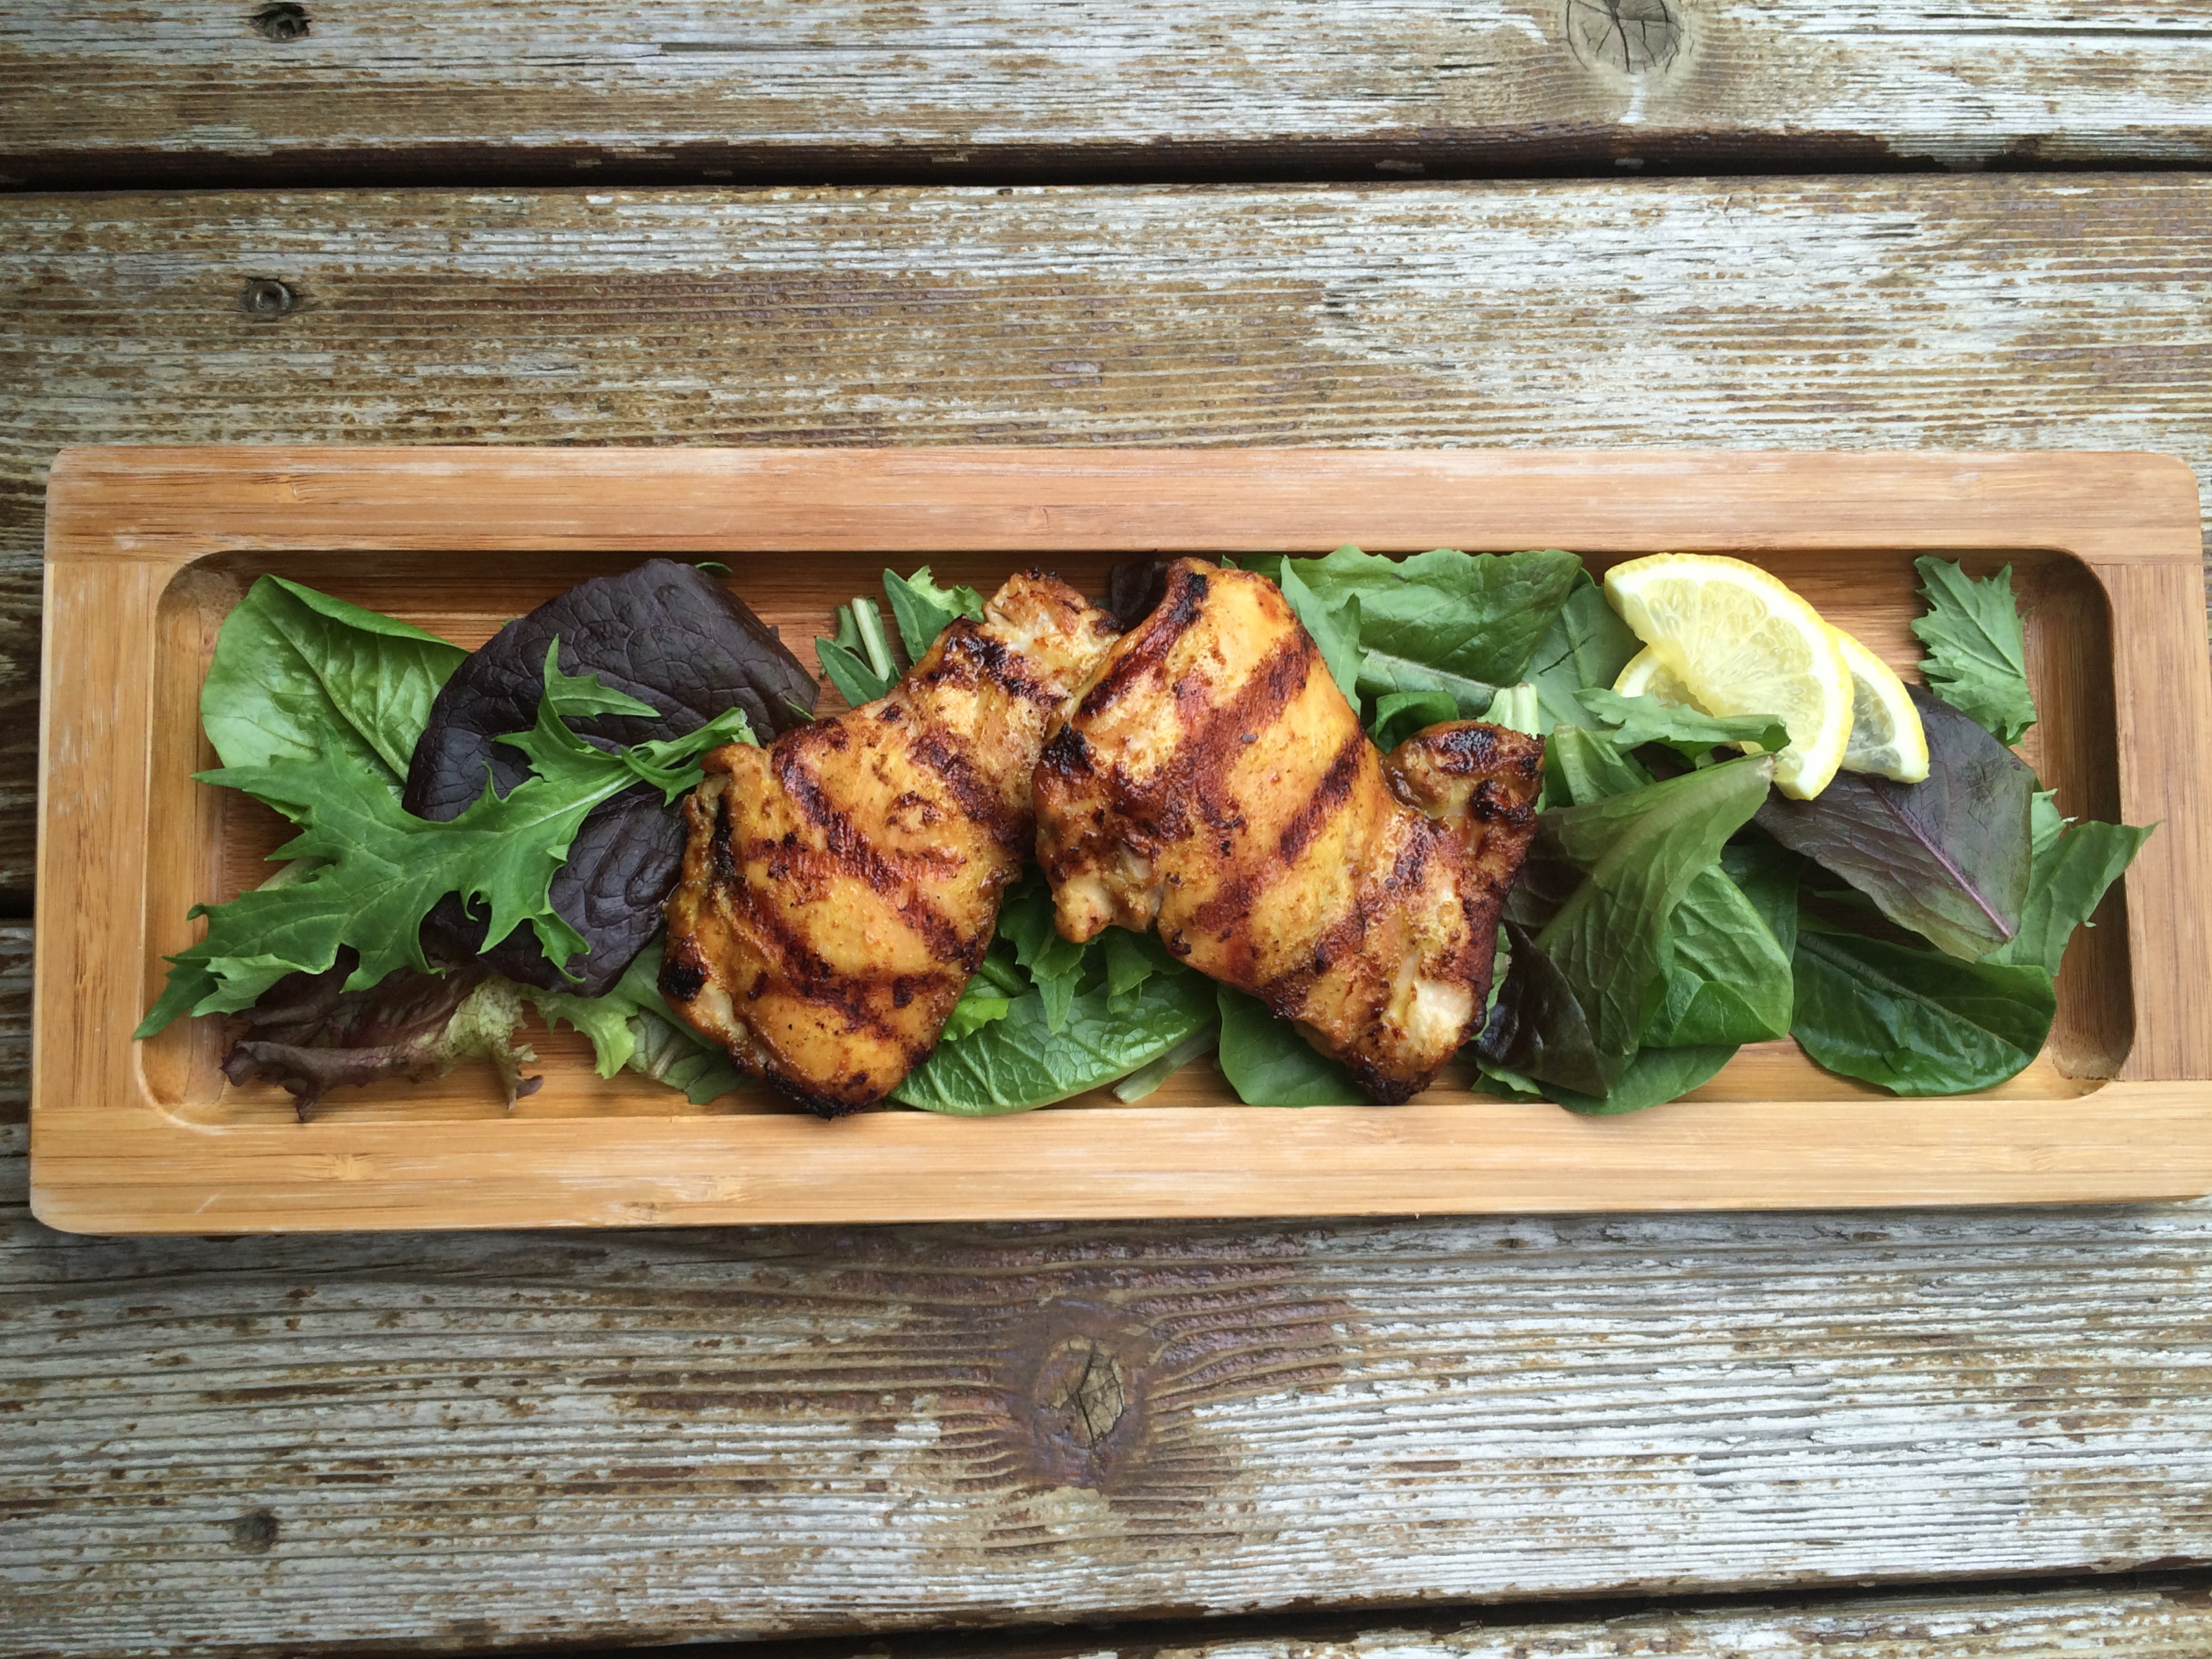 Zippy chicken thighs for the grill on a wooden plank.